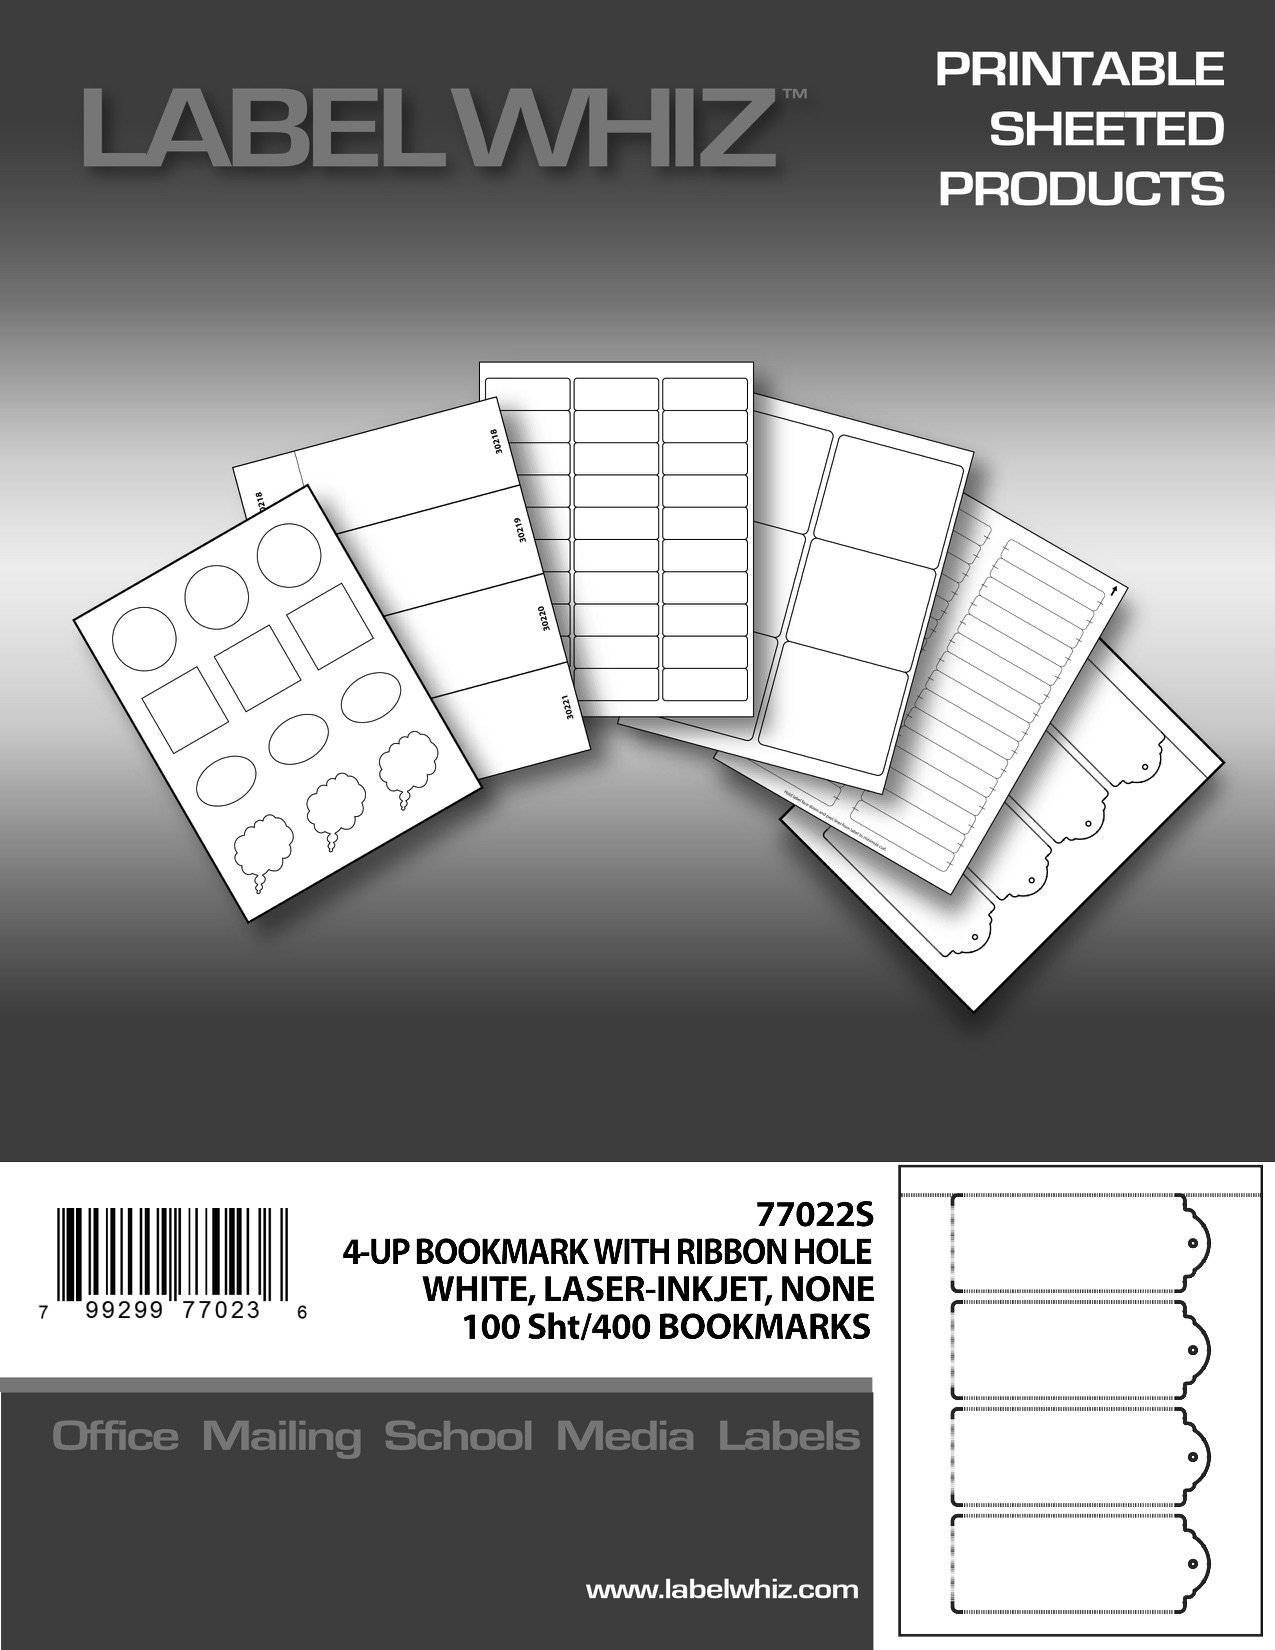 Adhesive Label Blank Printable Bookmark Sheets, 2-1/4 x 6 Inches, 4 per Sheet, 100 Sheets, White (77022S)